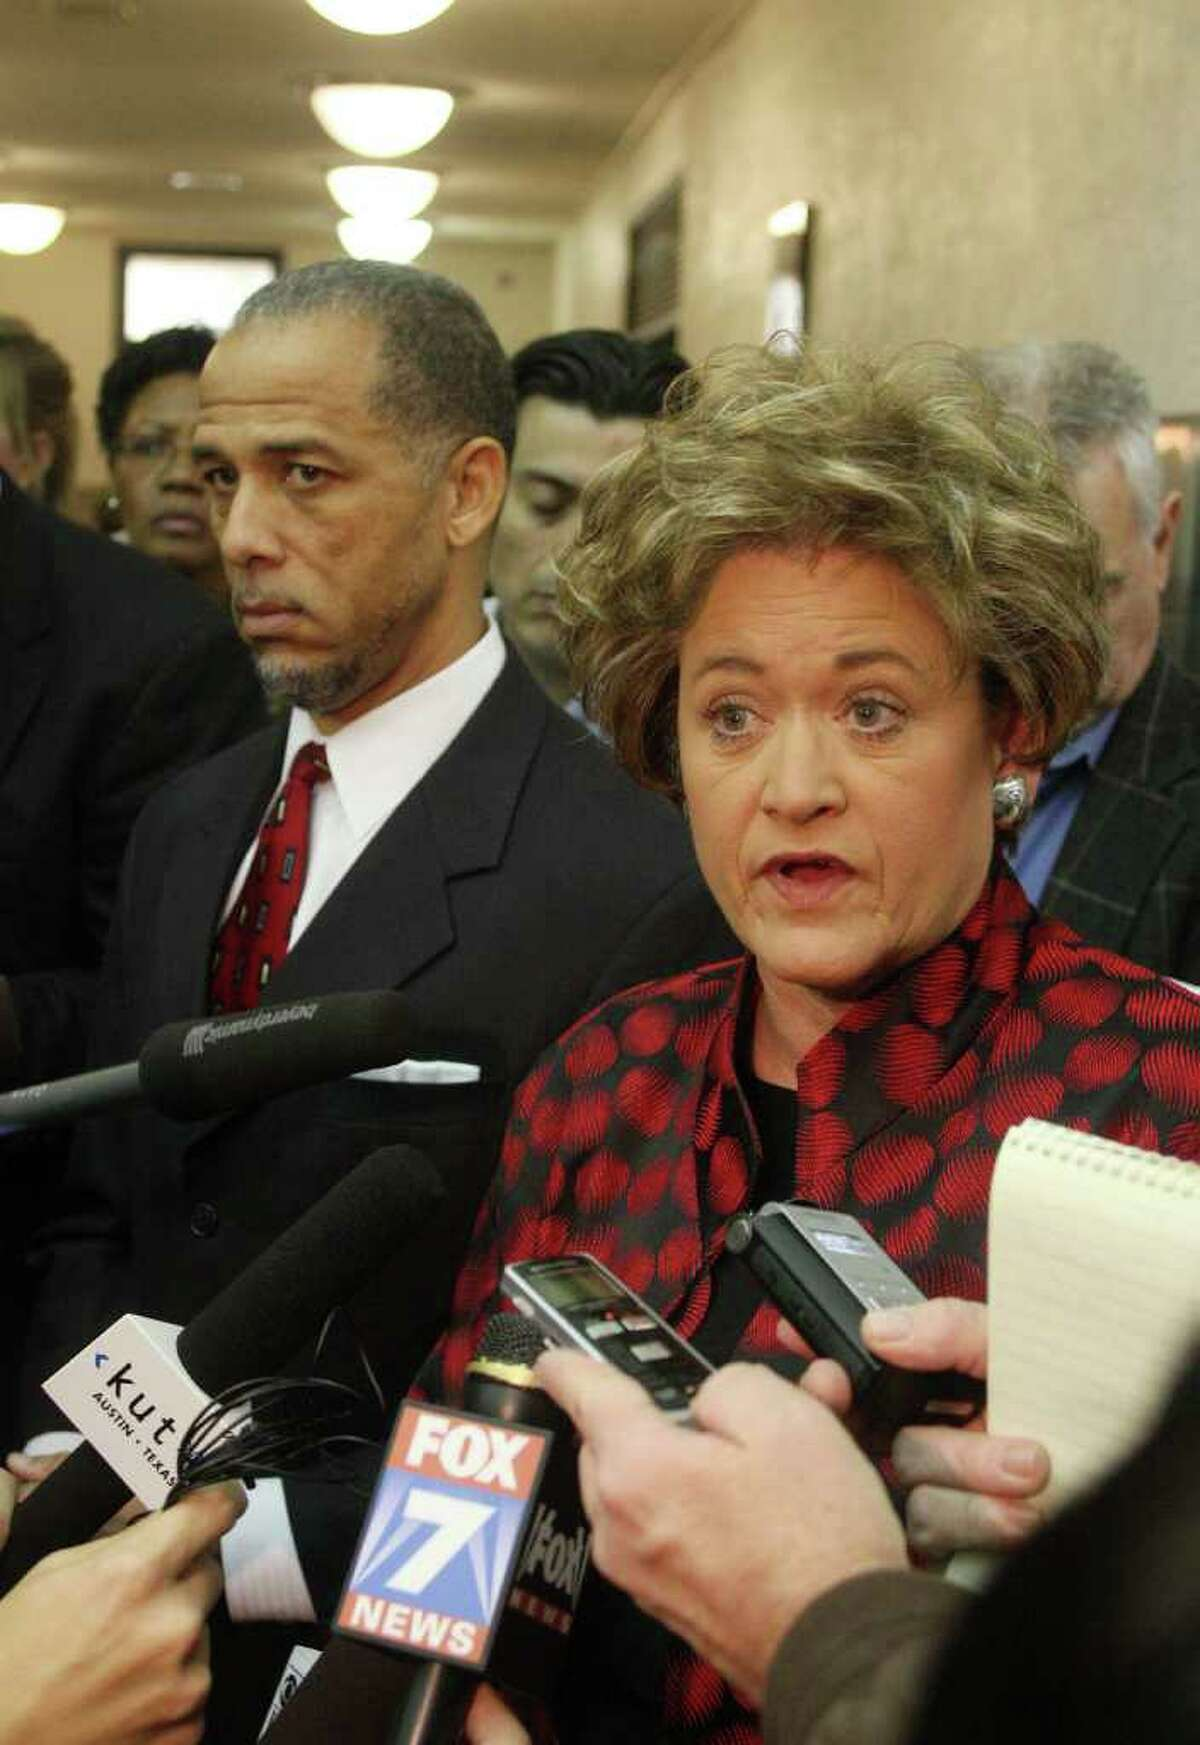 Travis County District Attorney Rosemary Lehmberg says she's satisfied with the sentence even though it doesn't require DeLay to go to the penitentiary immediately.